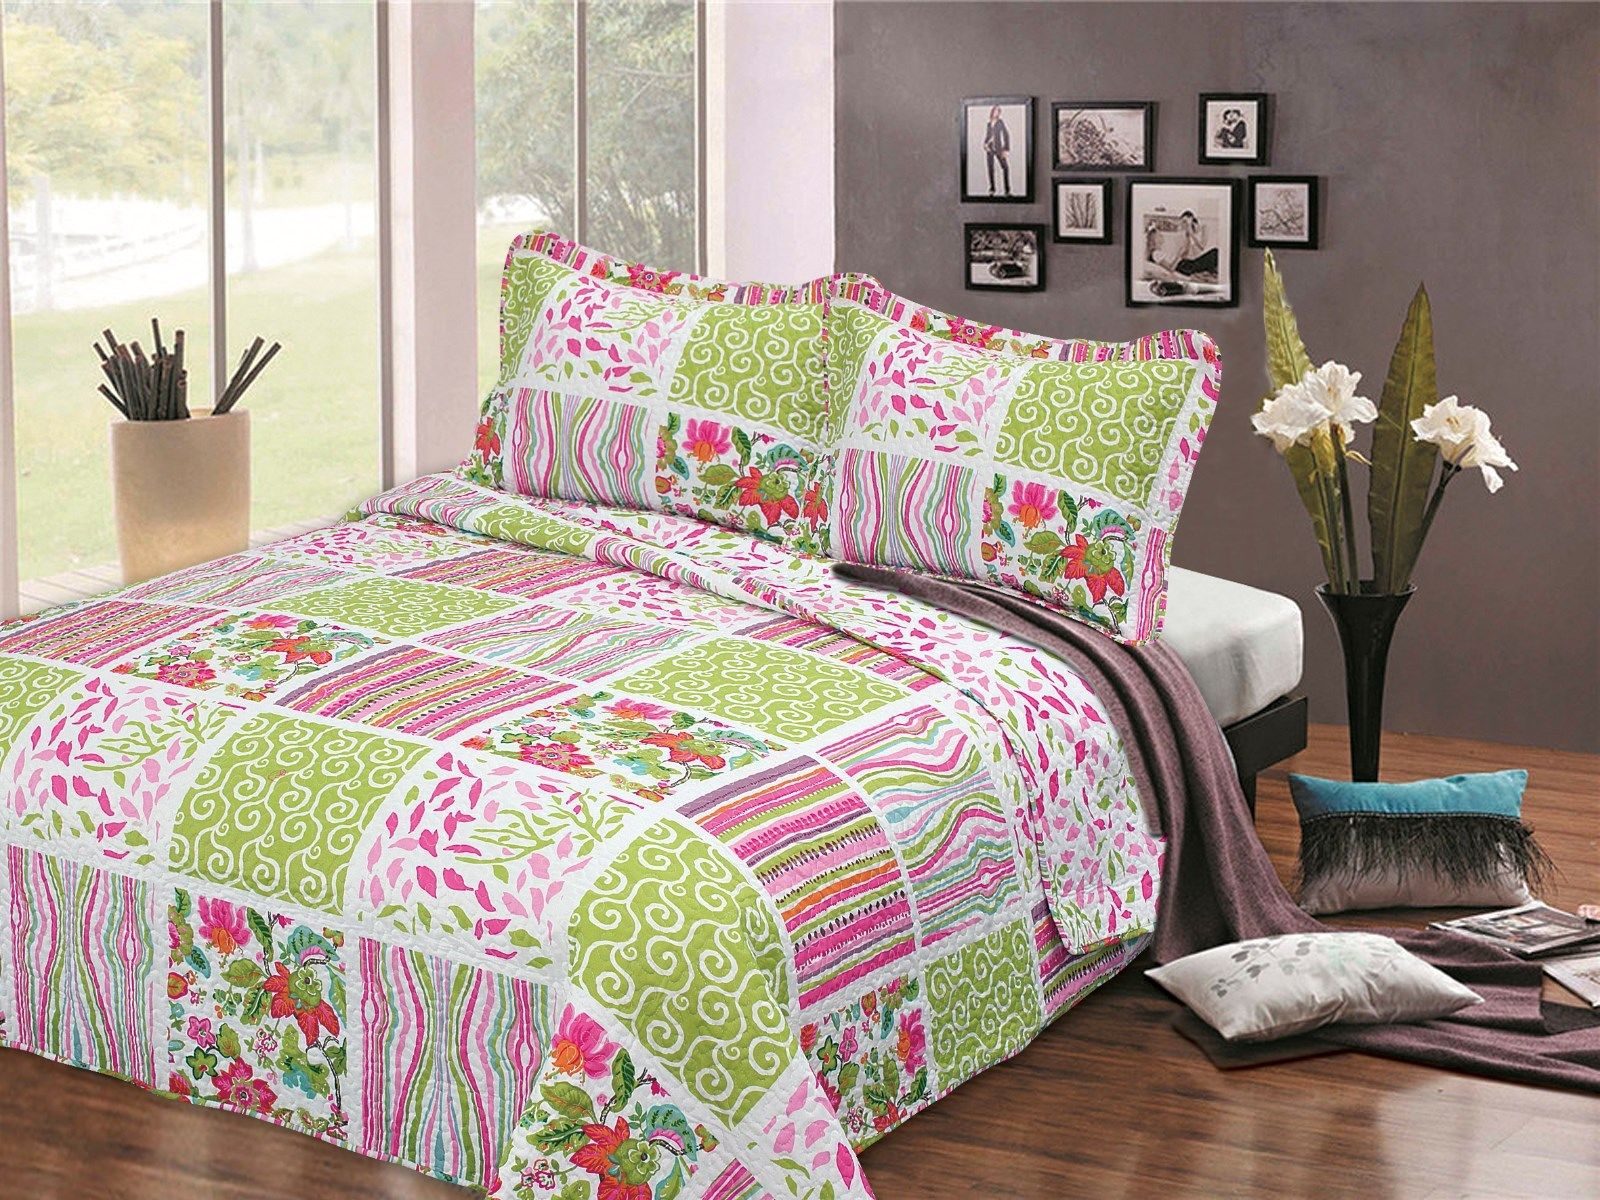 King Green Art Bedspread